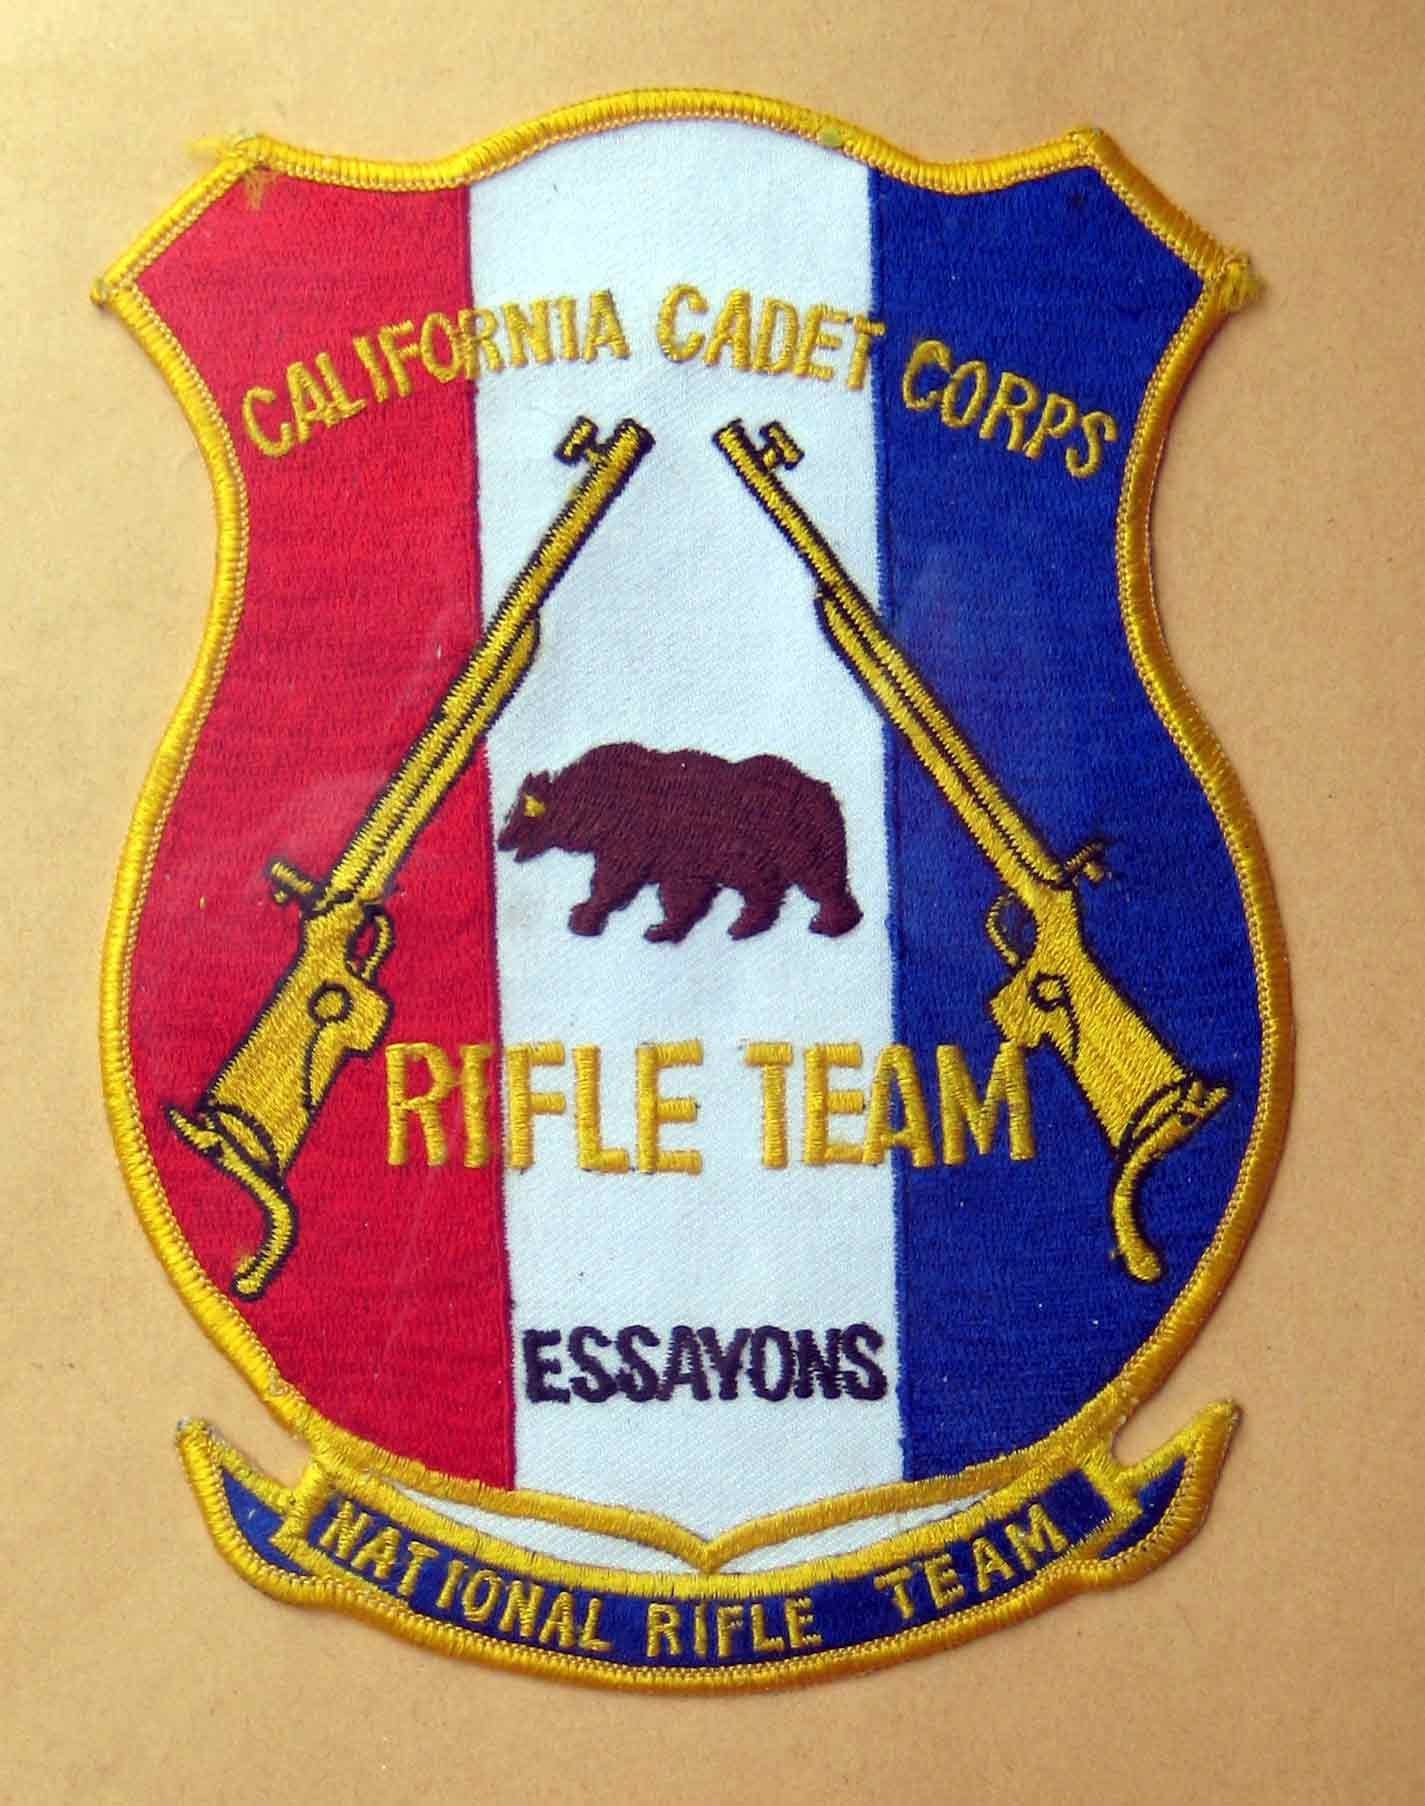 Patche presented to members of the California Cadet Corps National Rifle Team